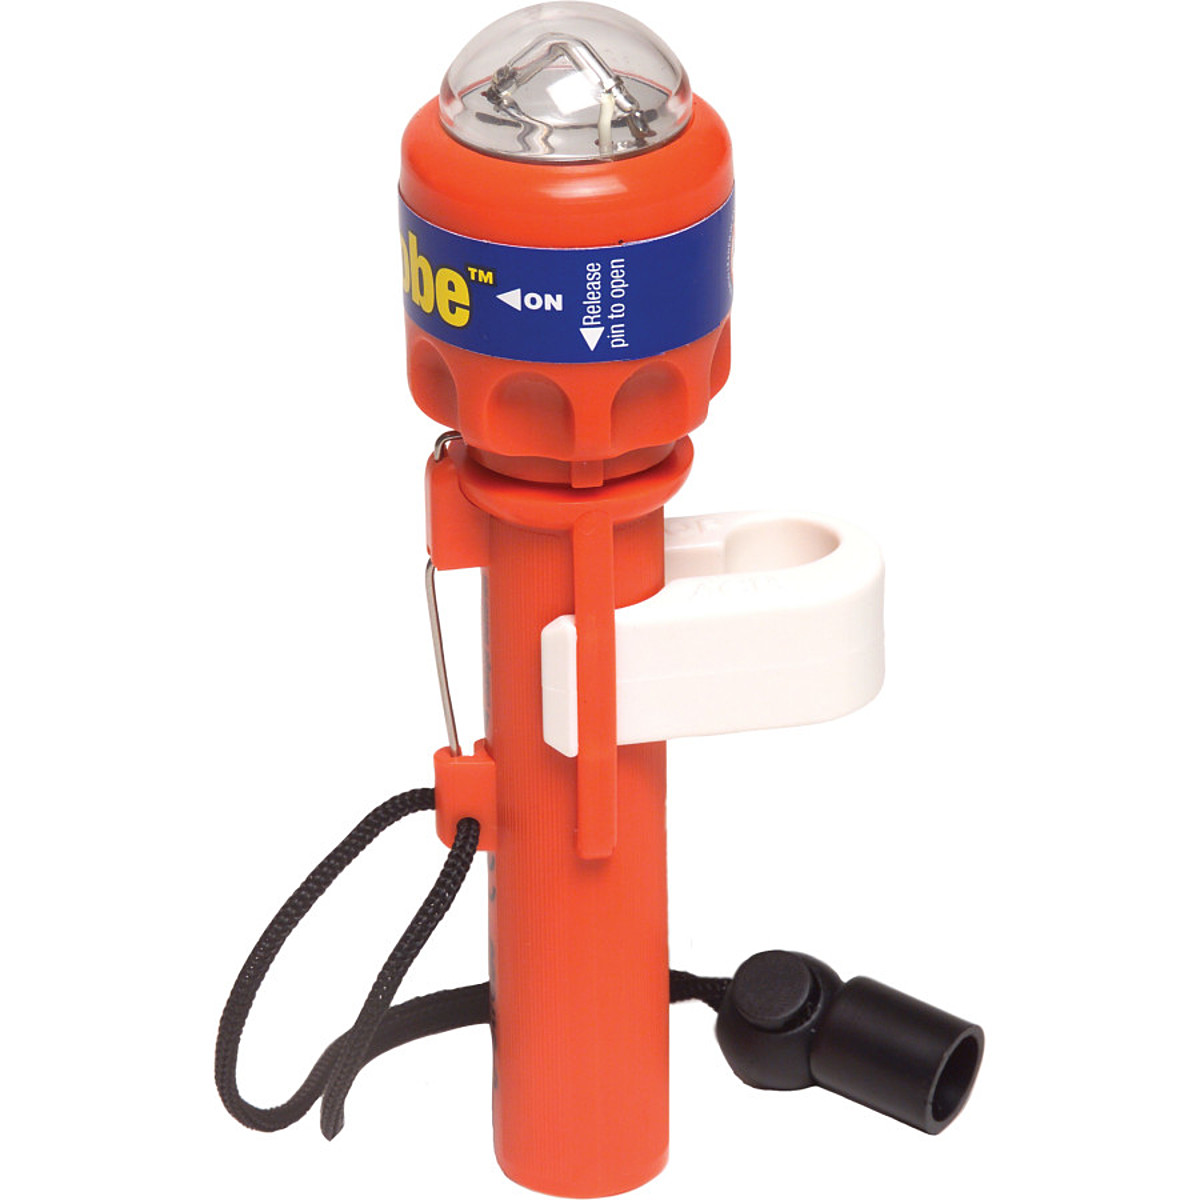 ACR C-Strobe Light